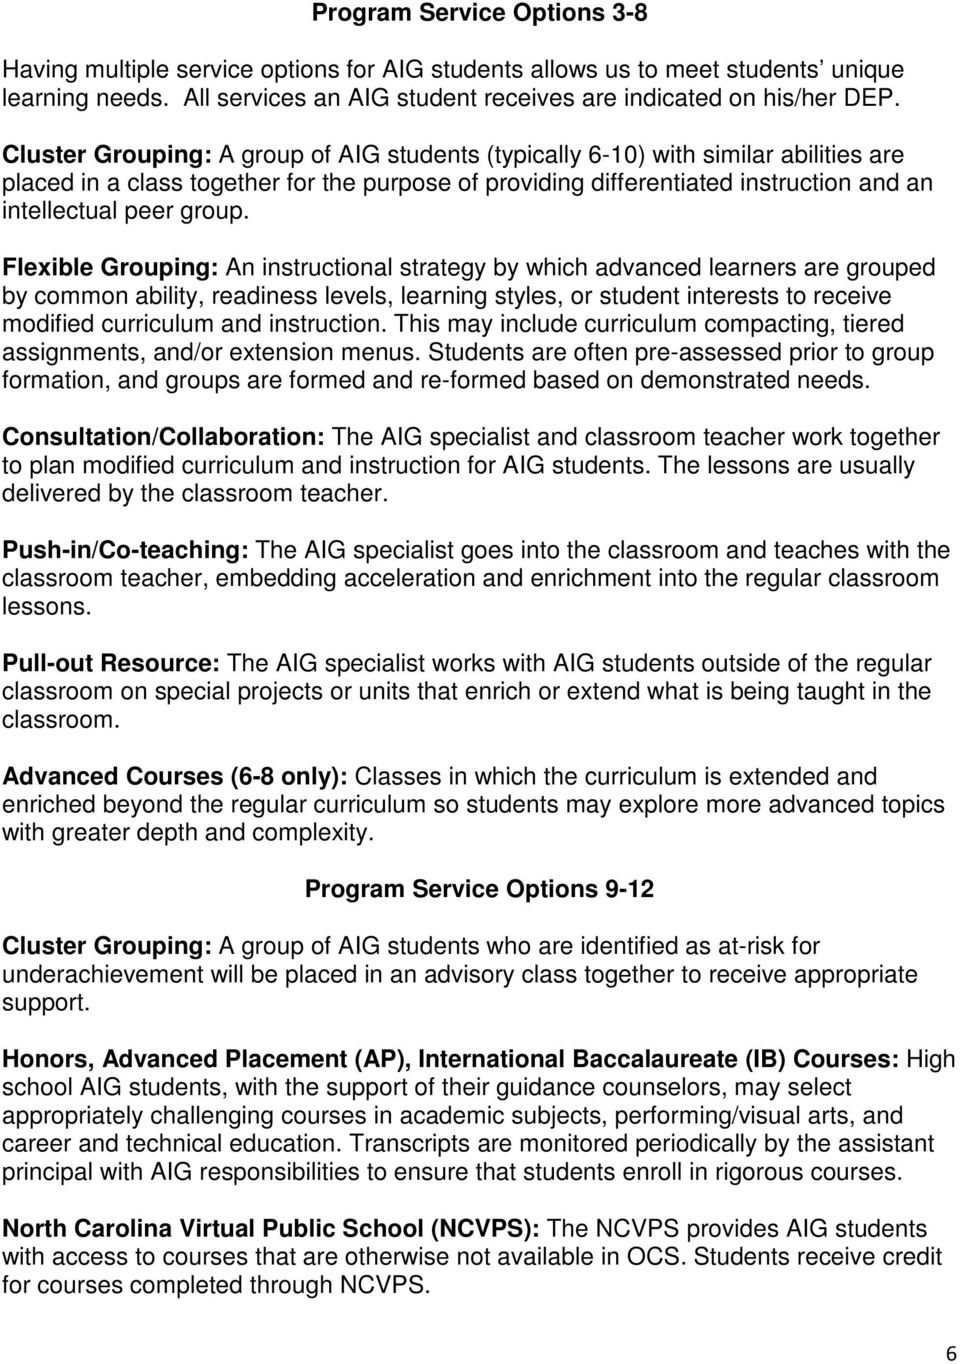 Flexible Grouping: An instructional strategy by which advanced learners are grouped by common ability, readiness levels, learning styles, or student interests to receive modified curriculum and